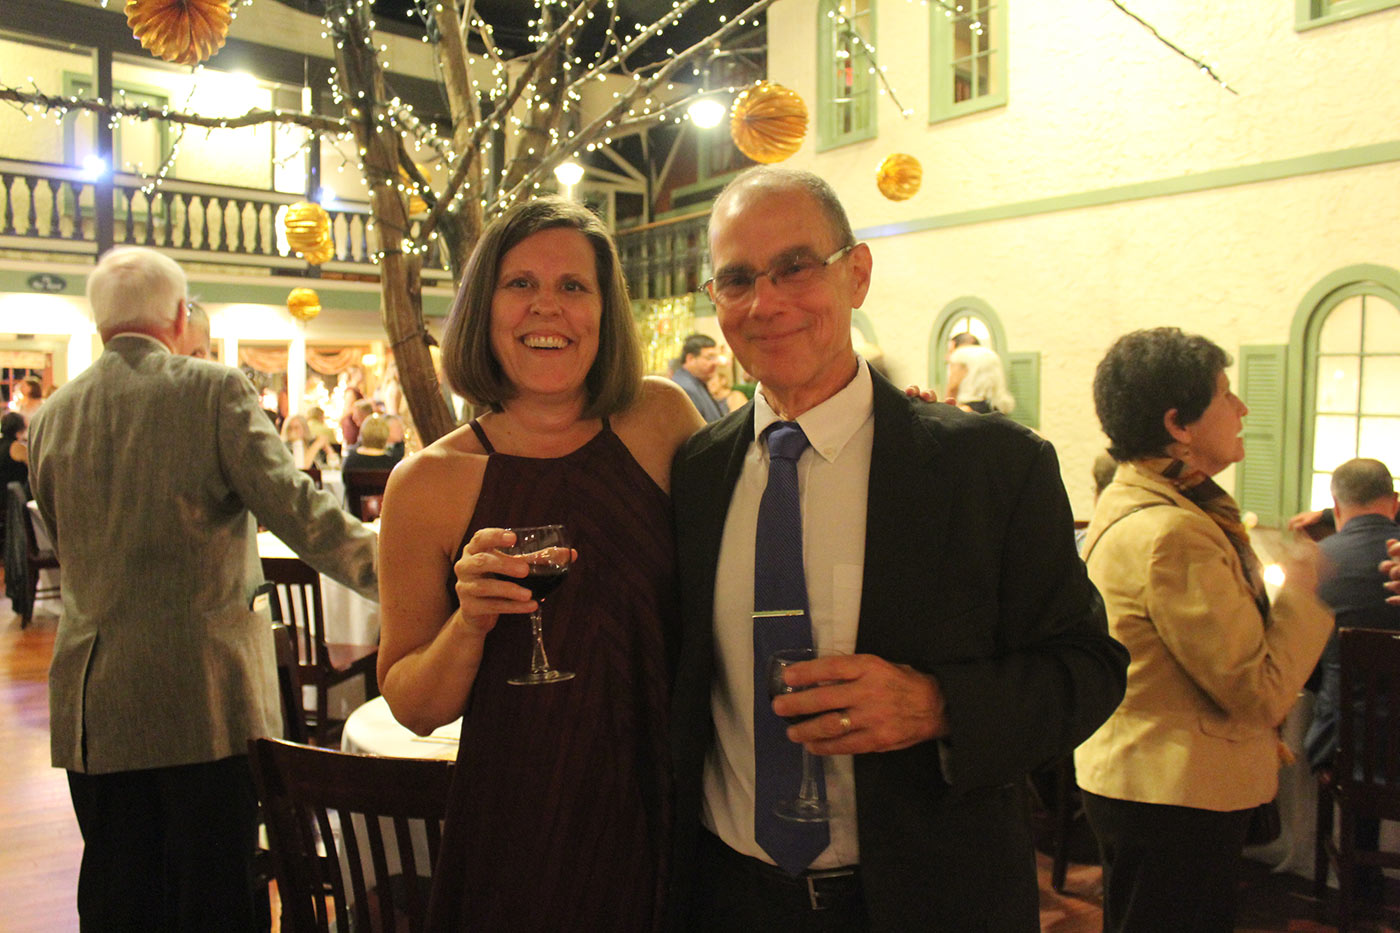 man and woman holding red wine glasses smiling for camera